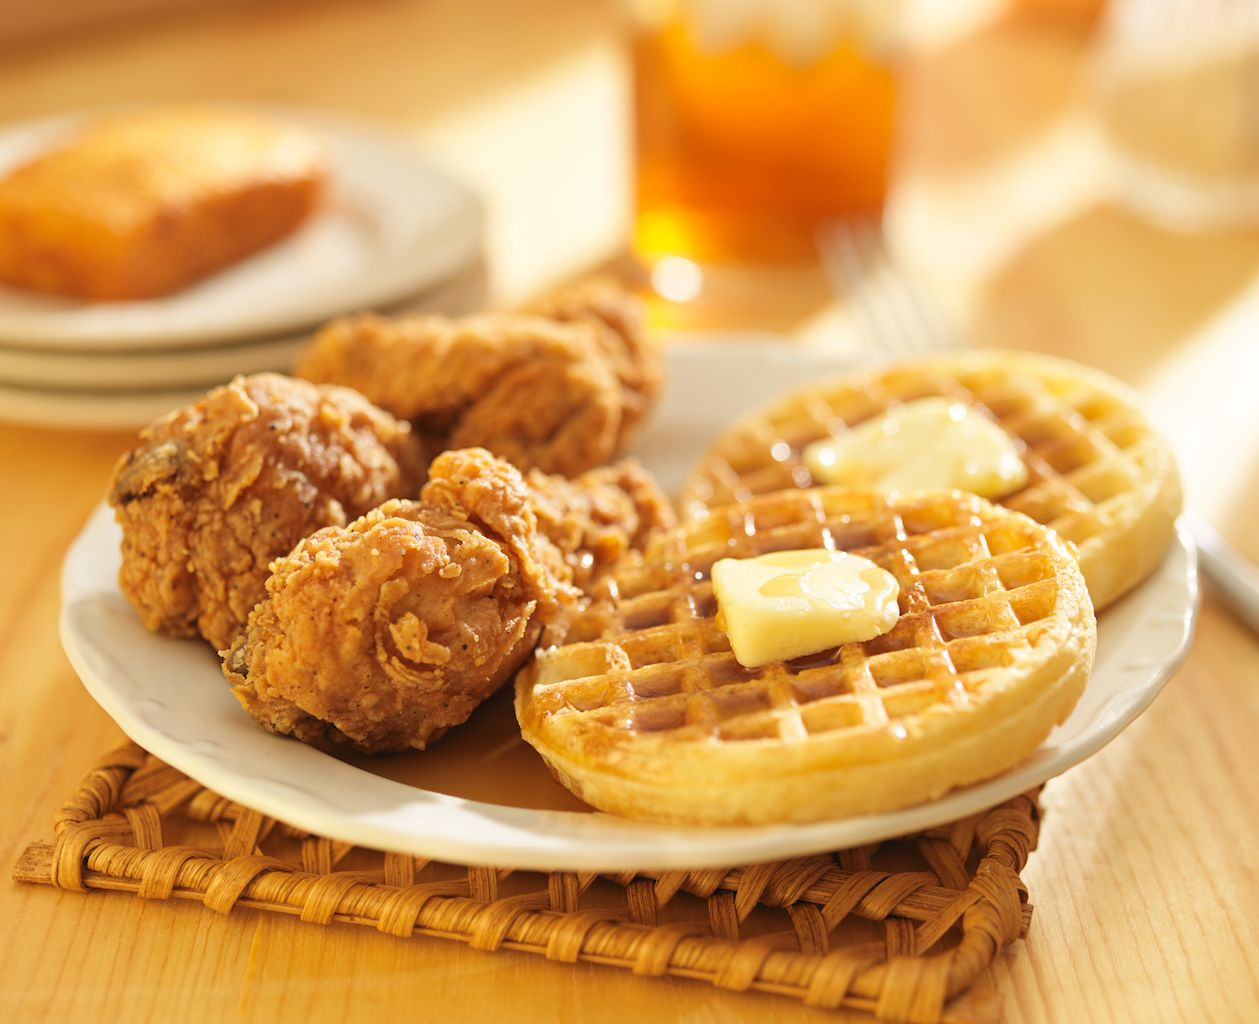 KFC serves chicken with waffles